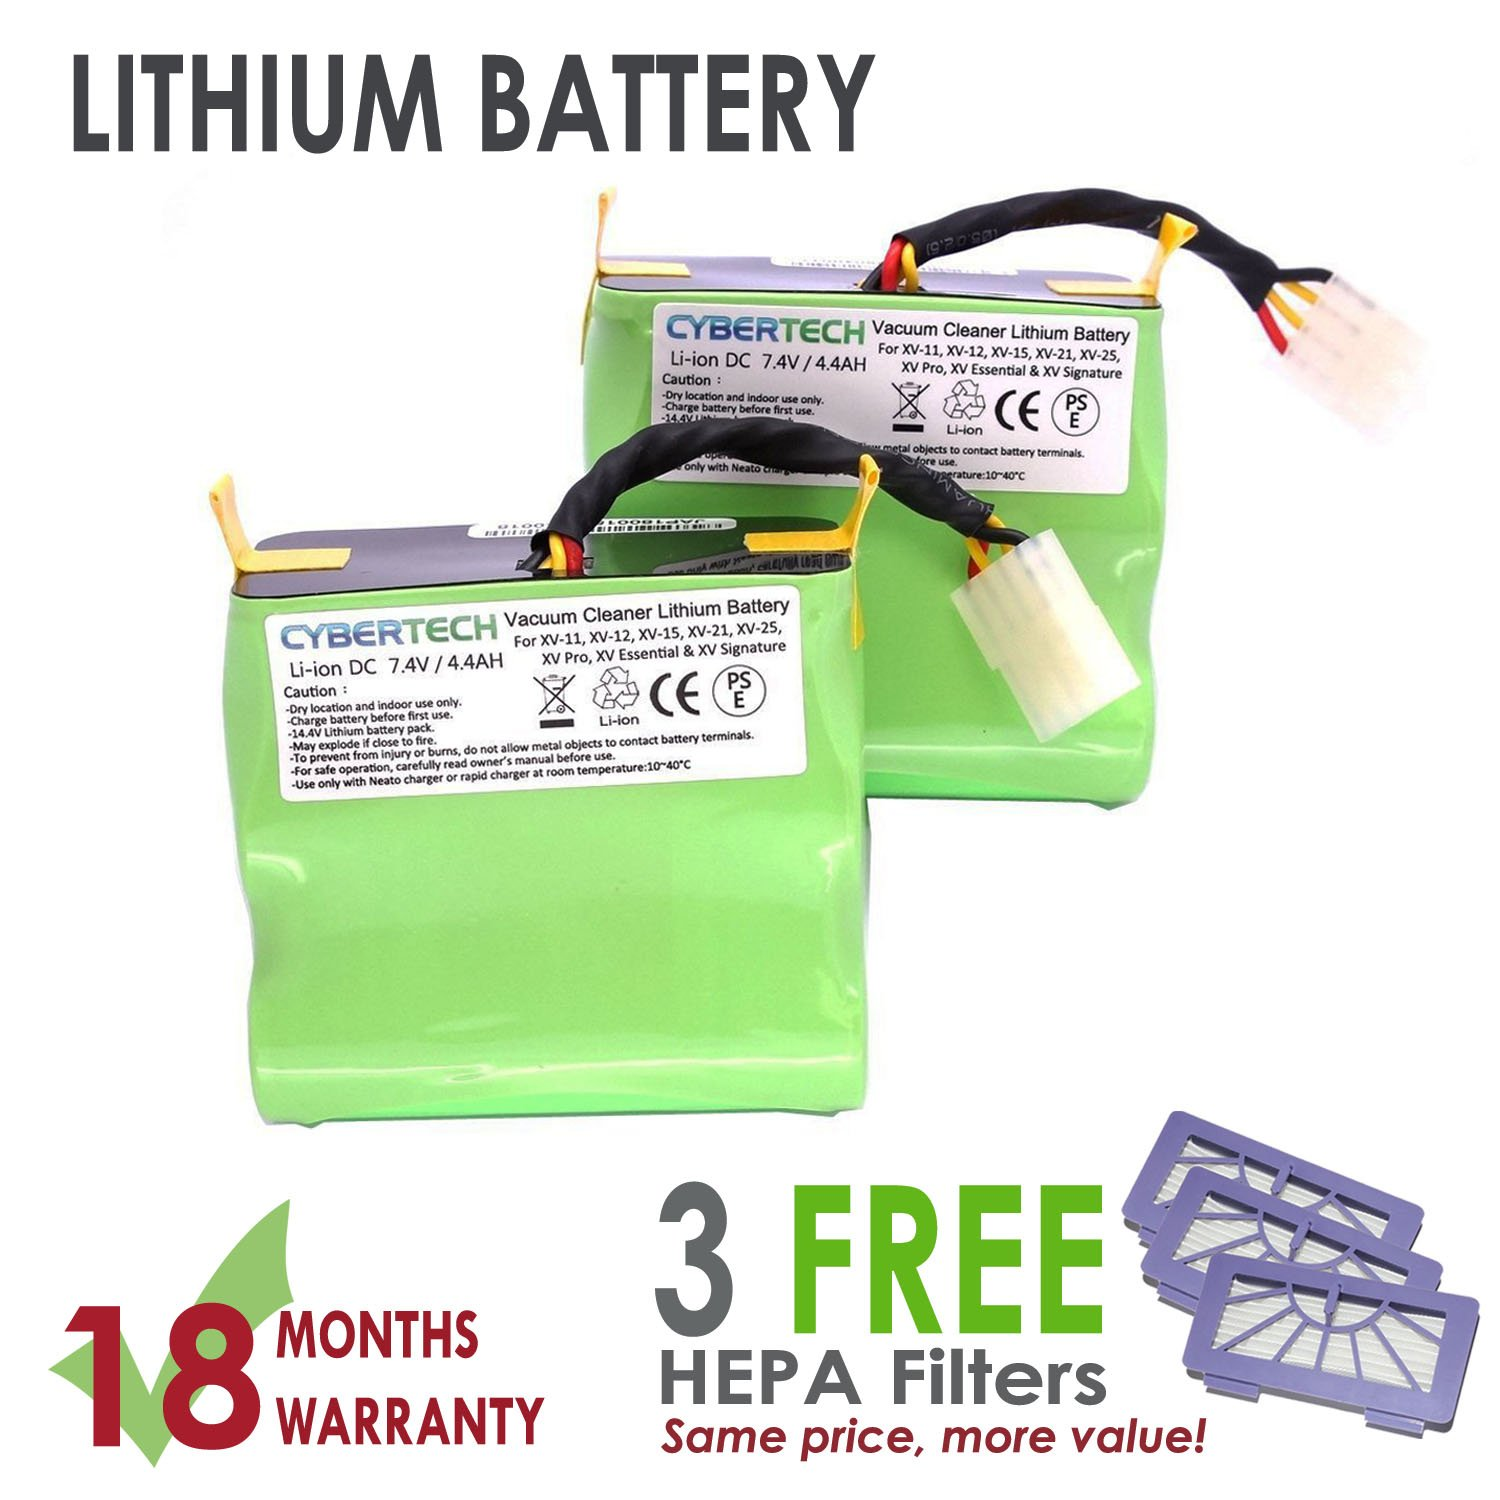 Lithium Neato VX 4400mAh Replacement Battery for Neato XV-11 XV-12 XV-14 XV-15 XV-21 XV-25 Signature XV Pro Robotic Vacuum Cleaner, Super Extended Long-Life battery with 3 FREE HEPA Filter - UL& CE Certified Components CyberTech